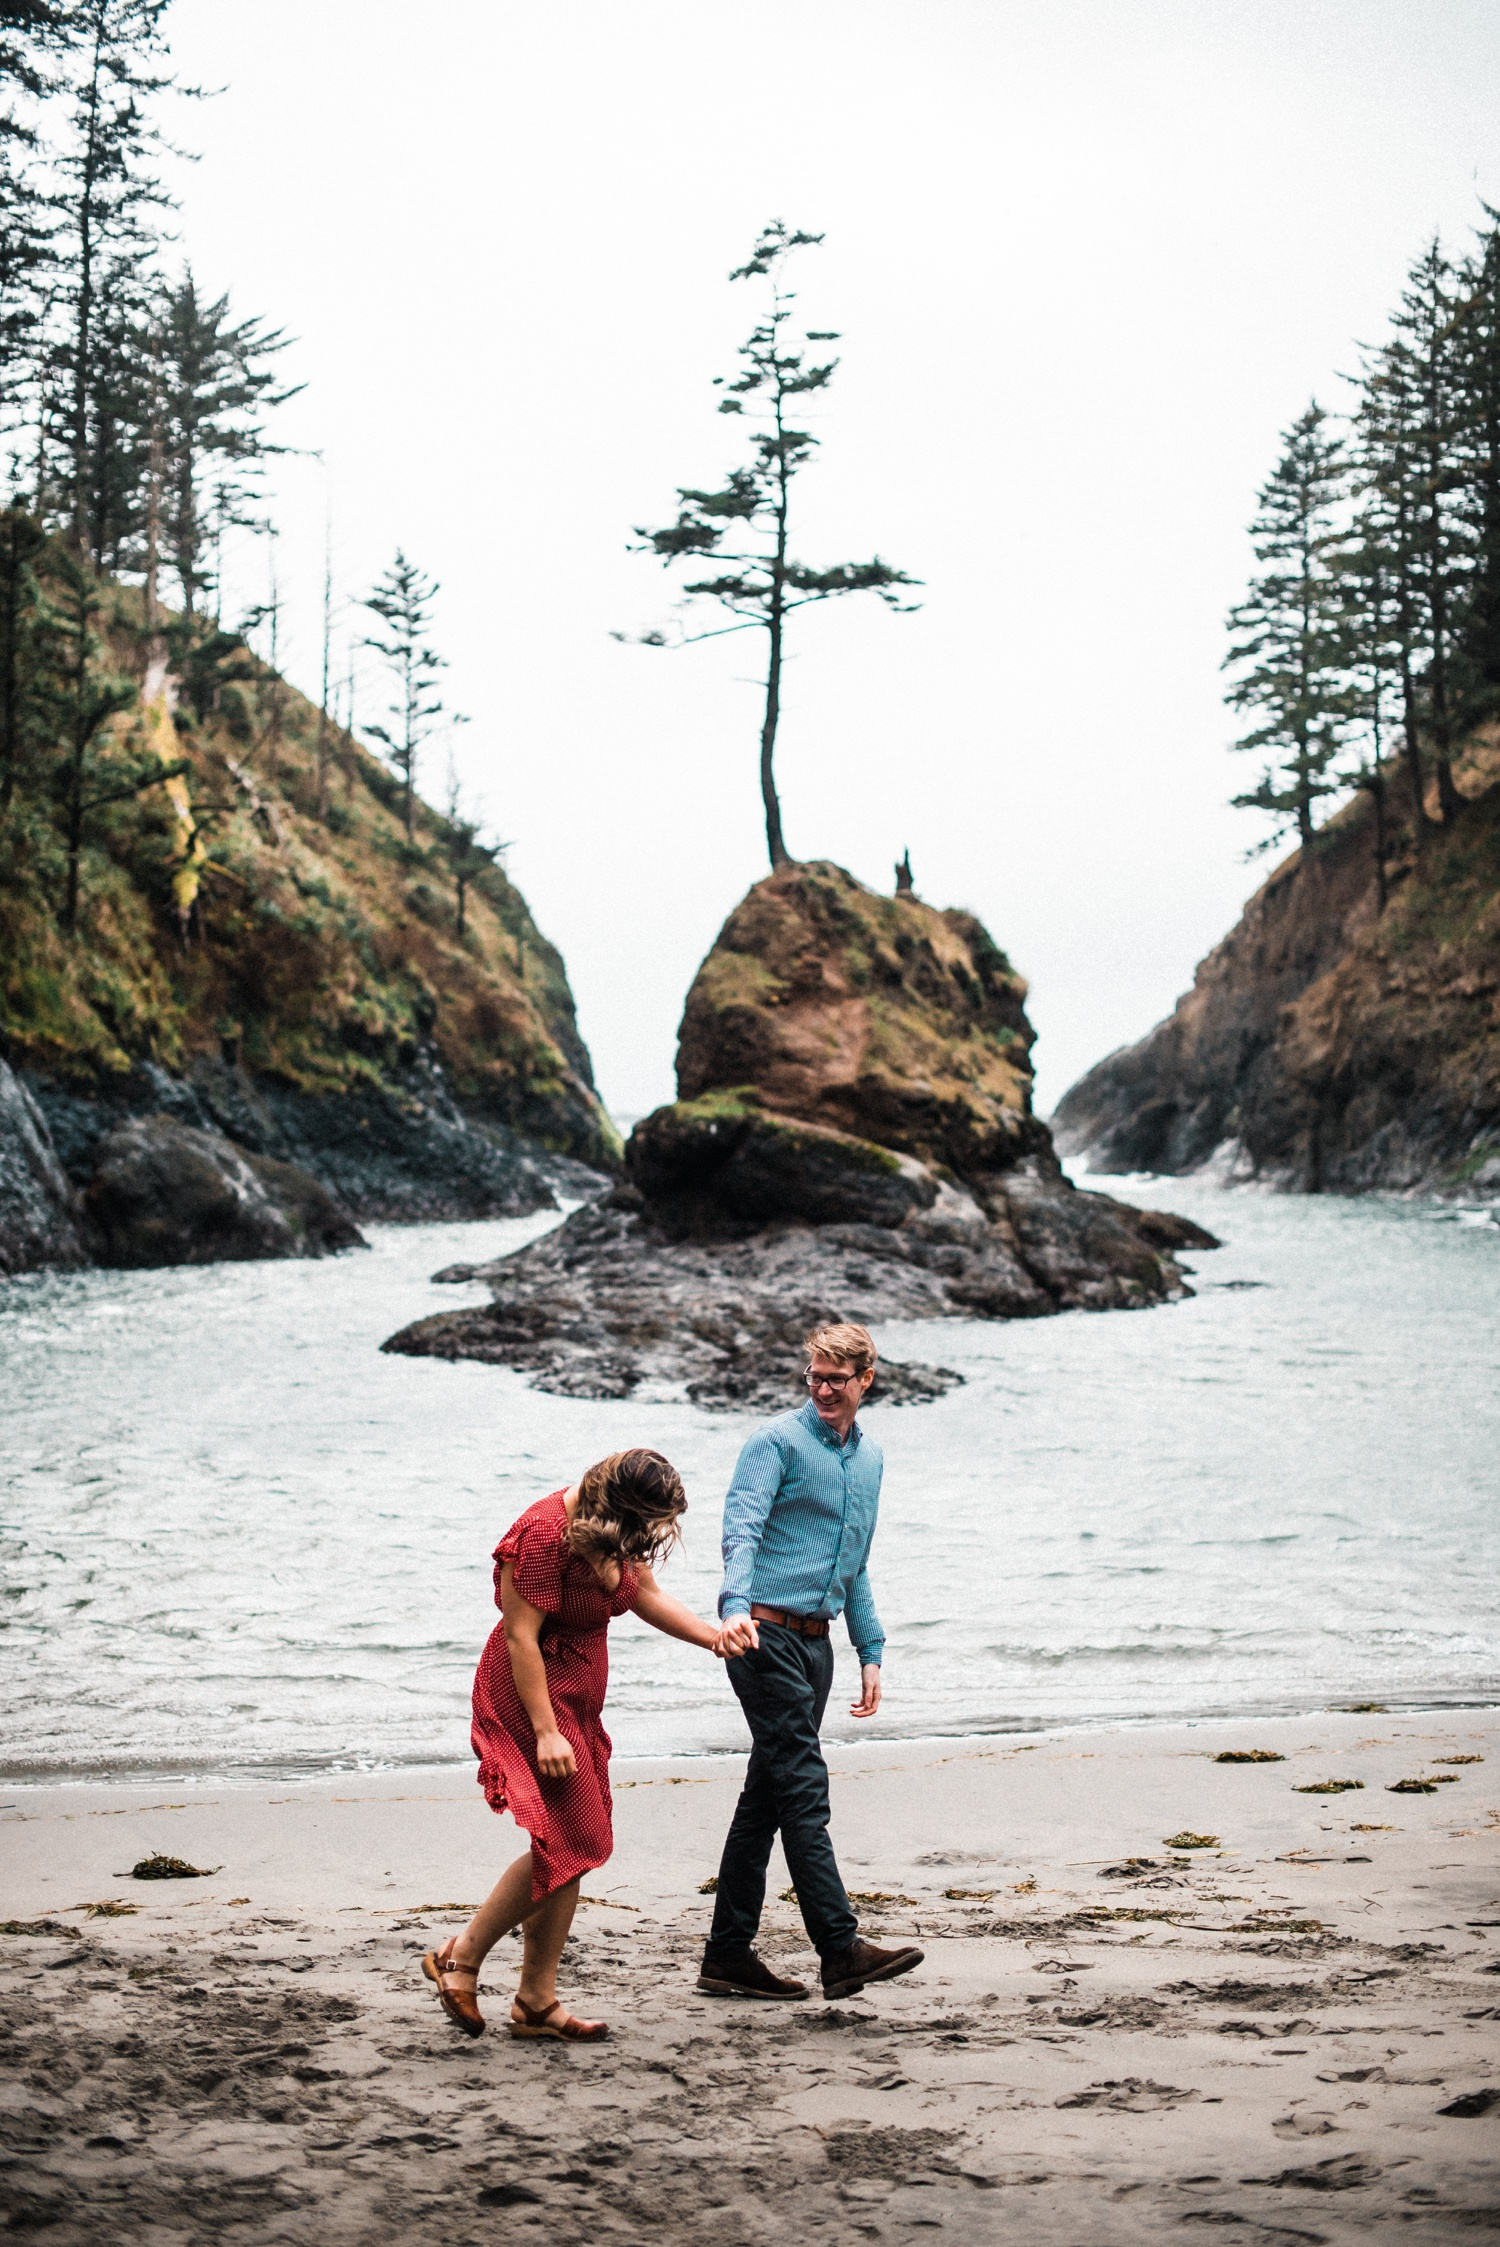 Cape_Disappointment_Engagment_Kailey_Alex_The_Foxes_Photography_104.jpg